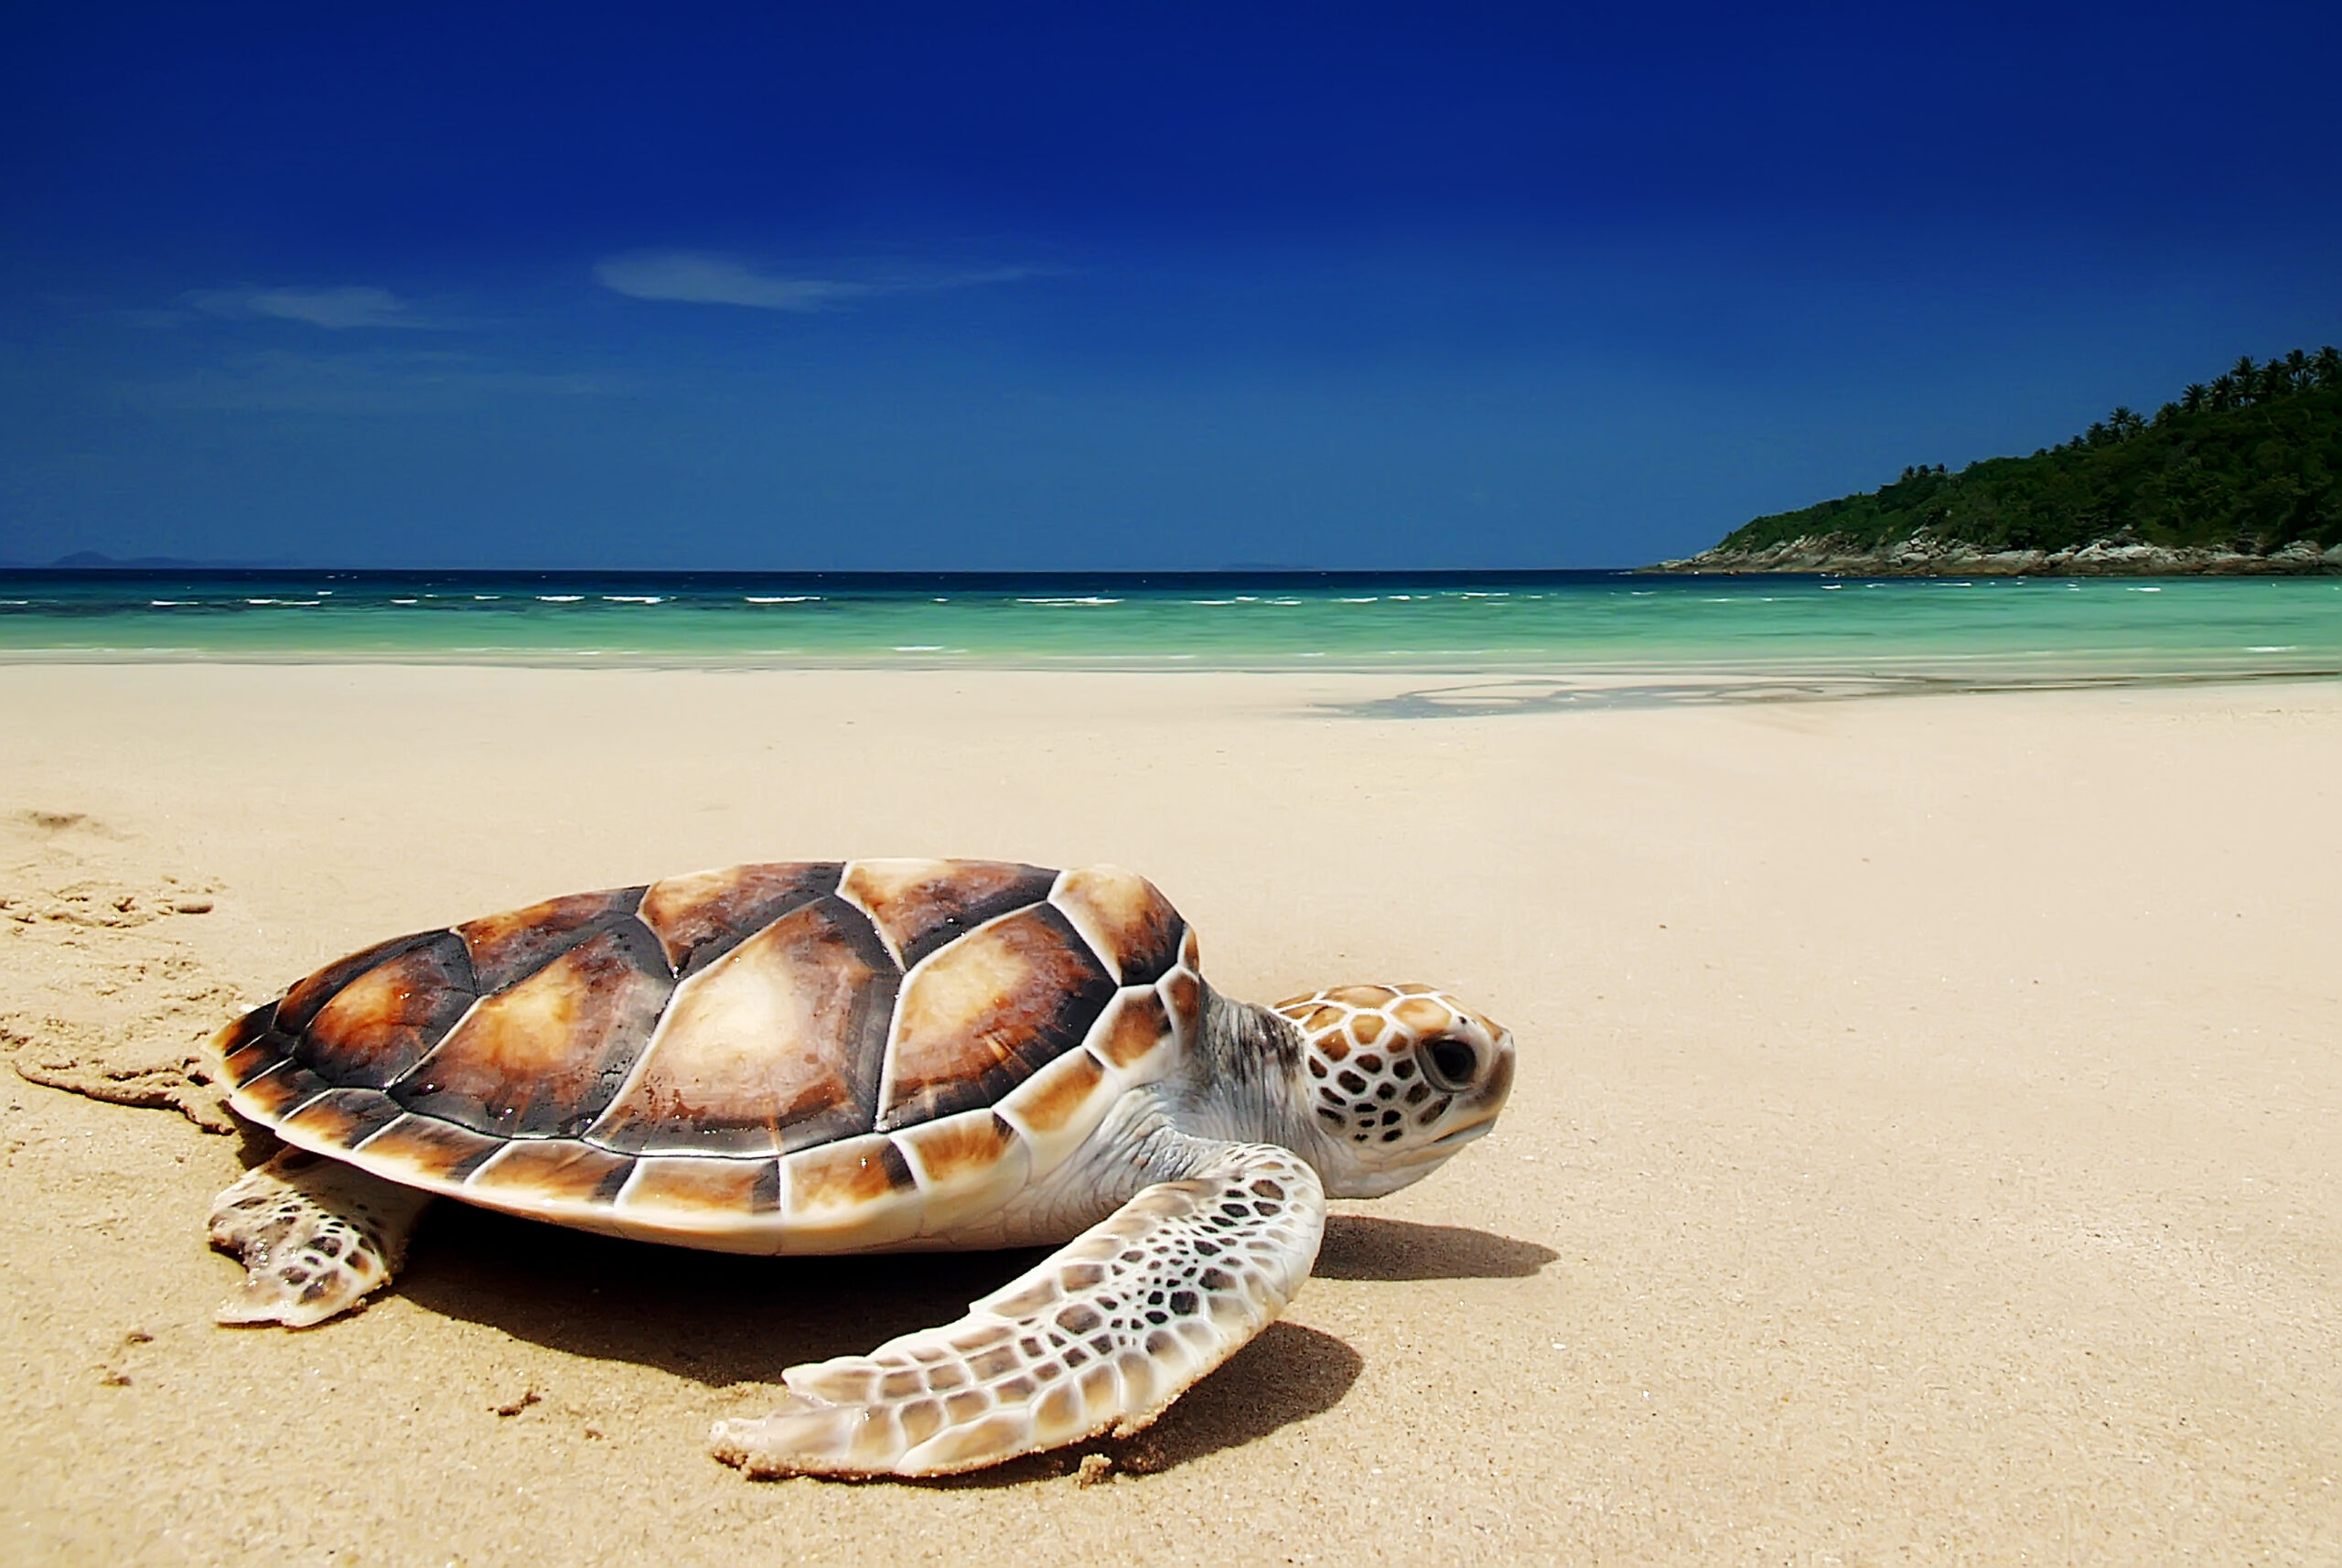 Turtle Island Submits Comments to NOAA to Defend Marine Monuments and Sanctuaries